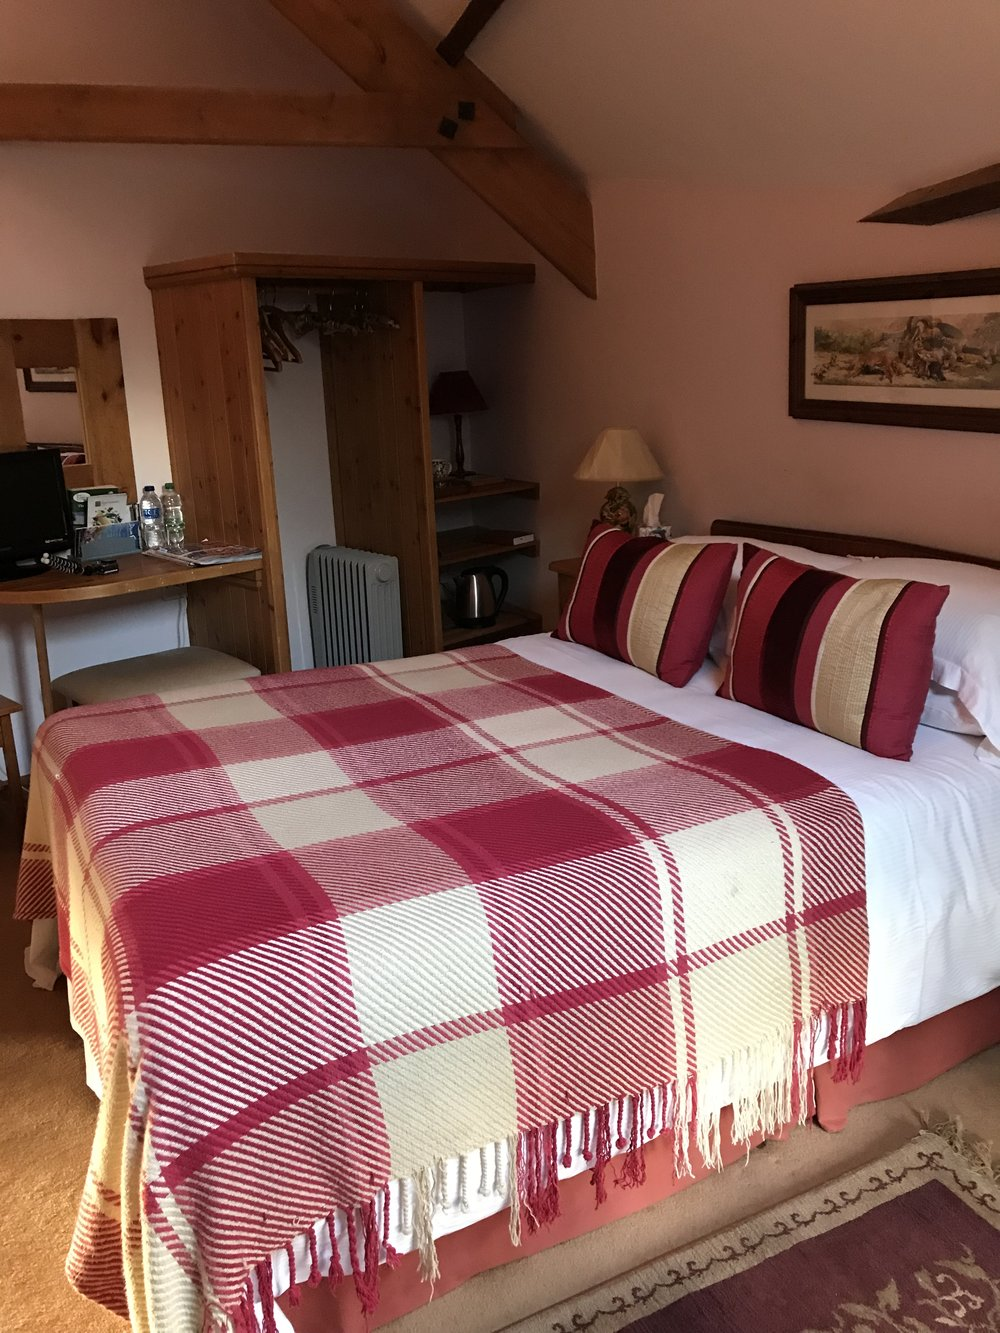 Cow Shippon Double - The Cow Shippon double room is framed by a beautiful open beamed ceiling complimented by an ensuite bathroom with a shower. The room facilities include a beverage tray, homemade biscuits and fresh flowers from the garden.